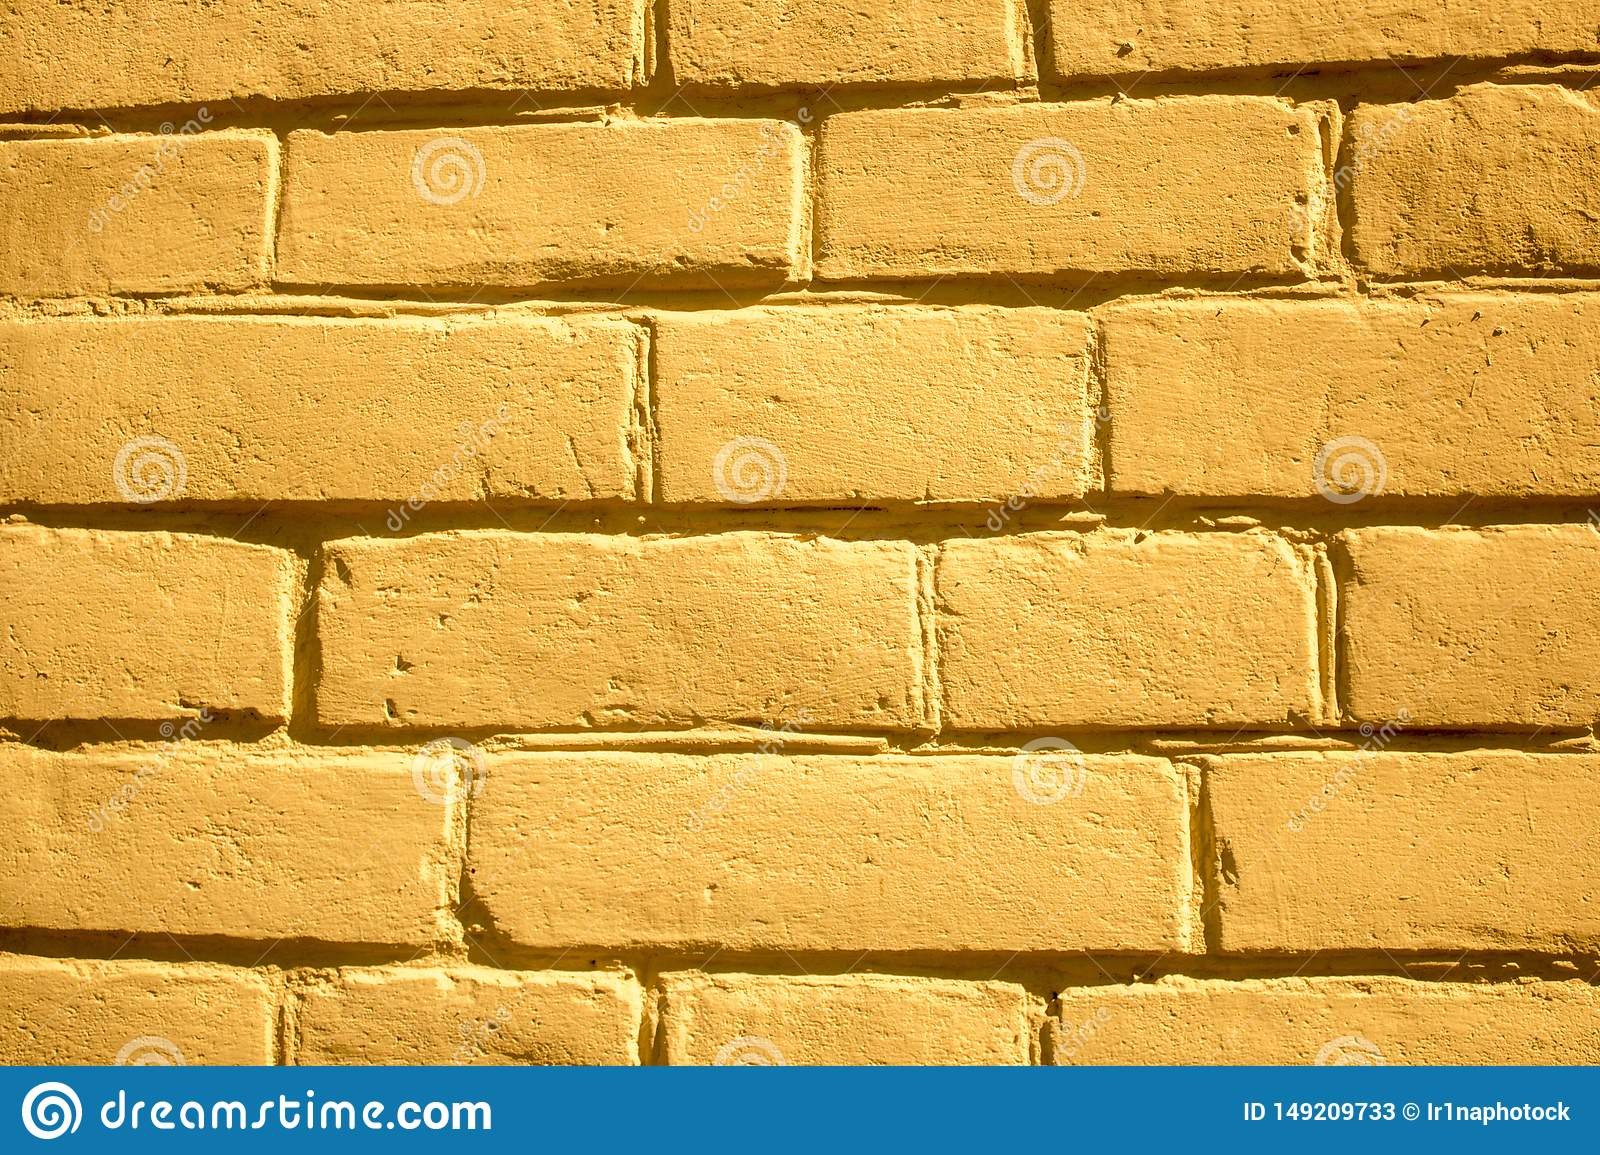 Yellow brick wall background for designers